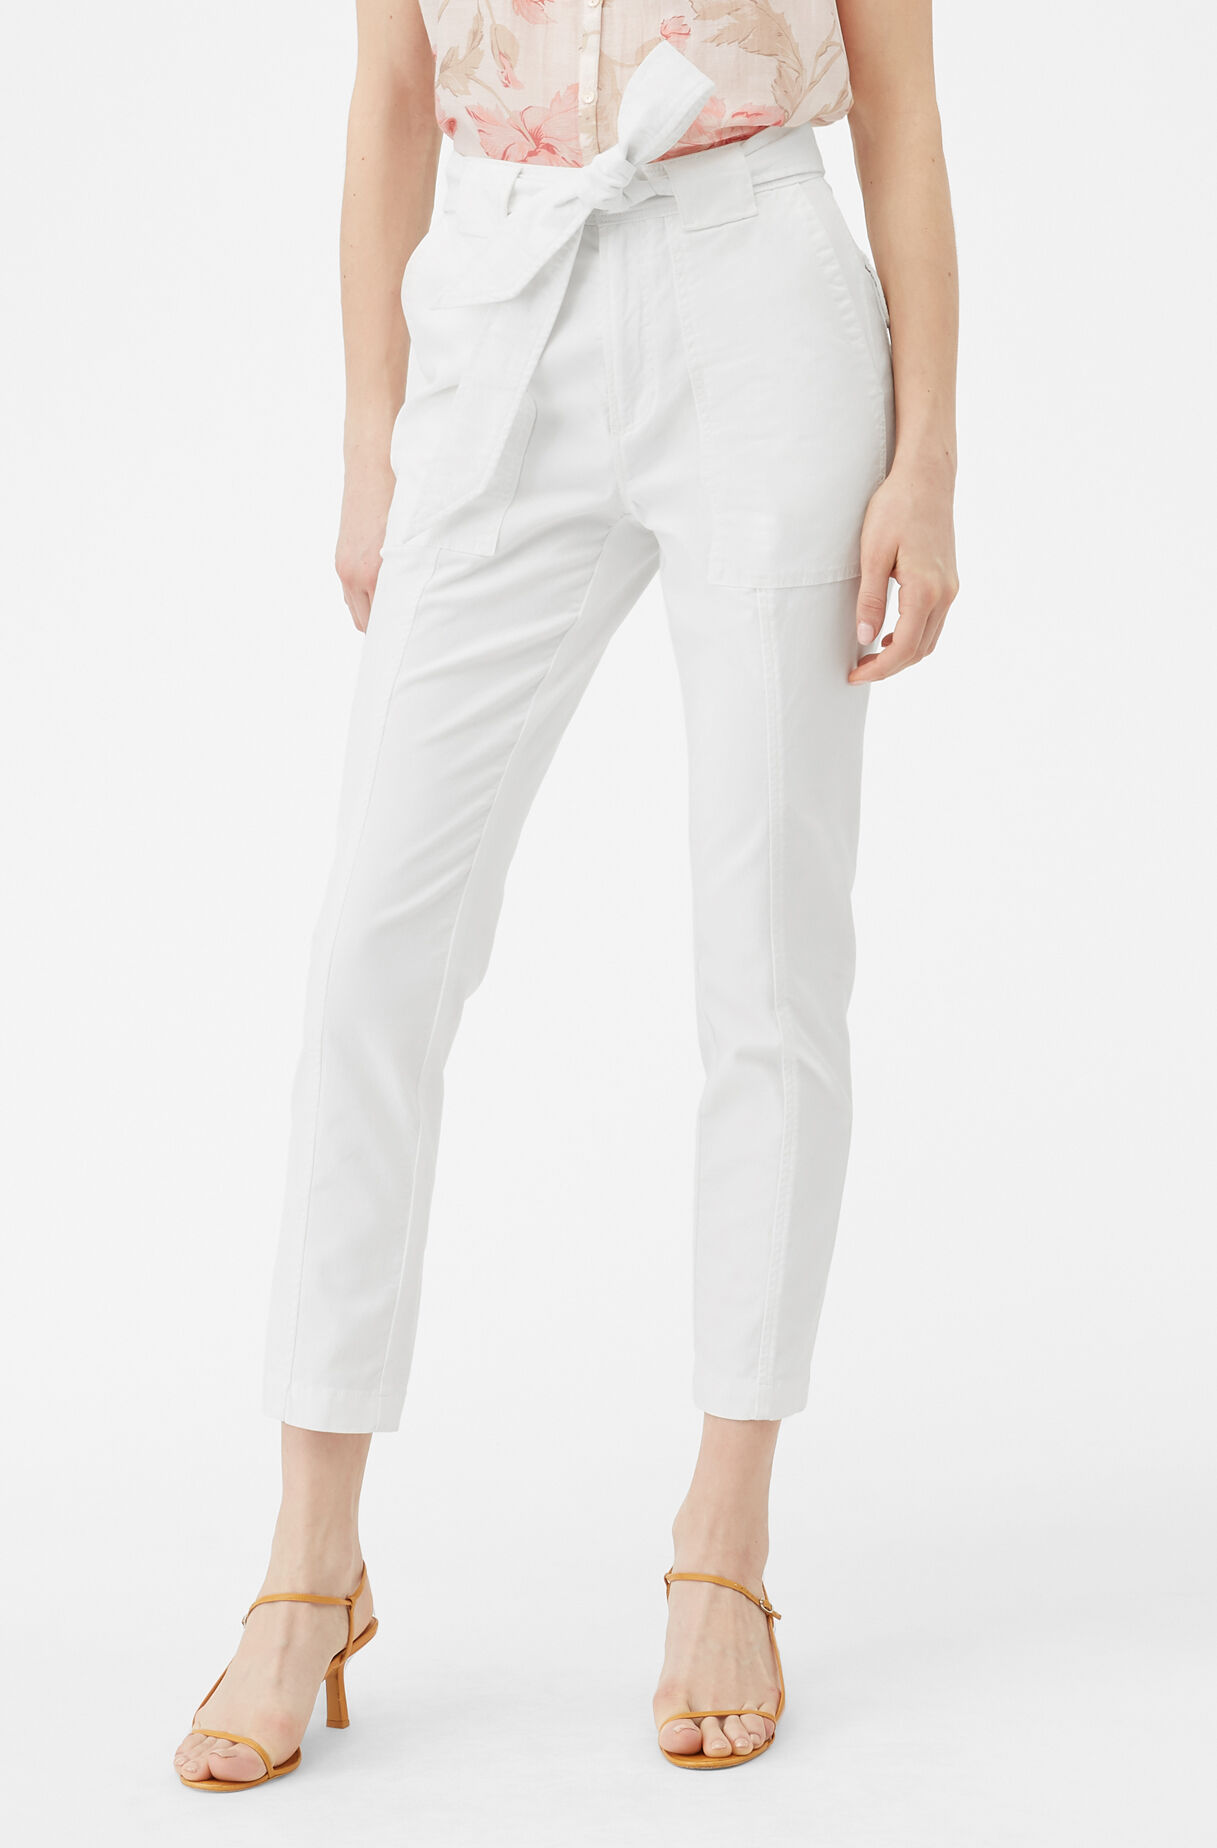 La Vie Patrice Stretch Twill Pant, Milk, large